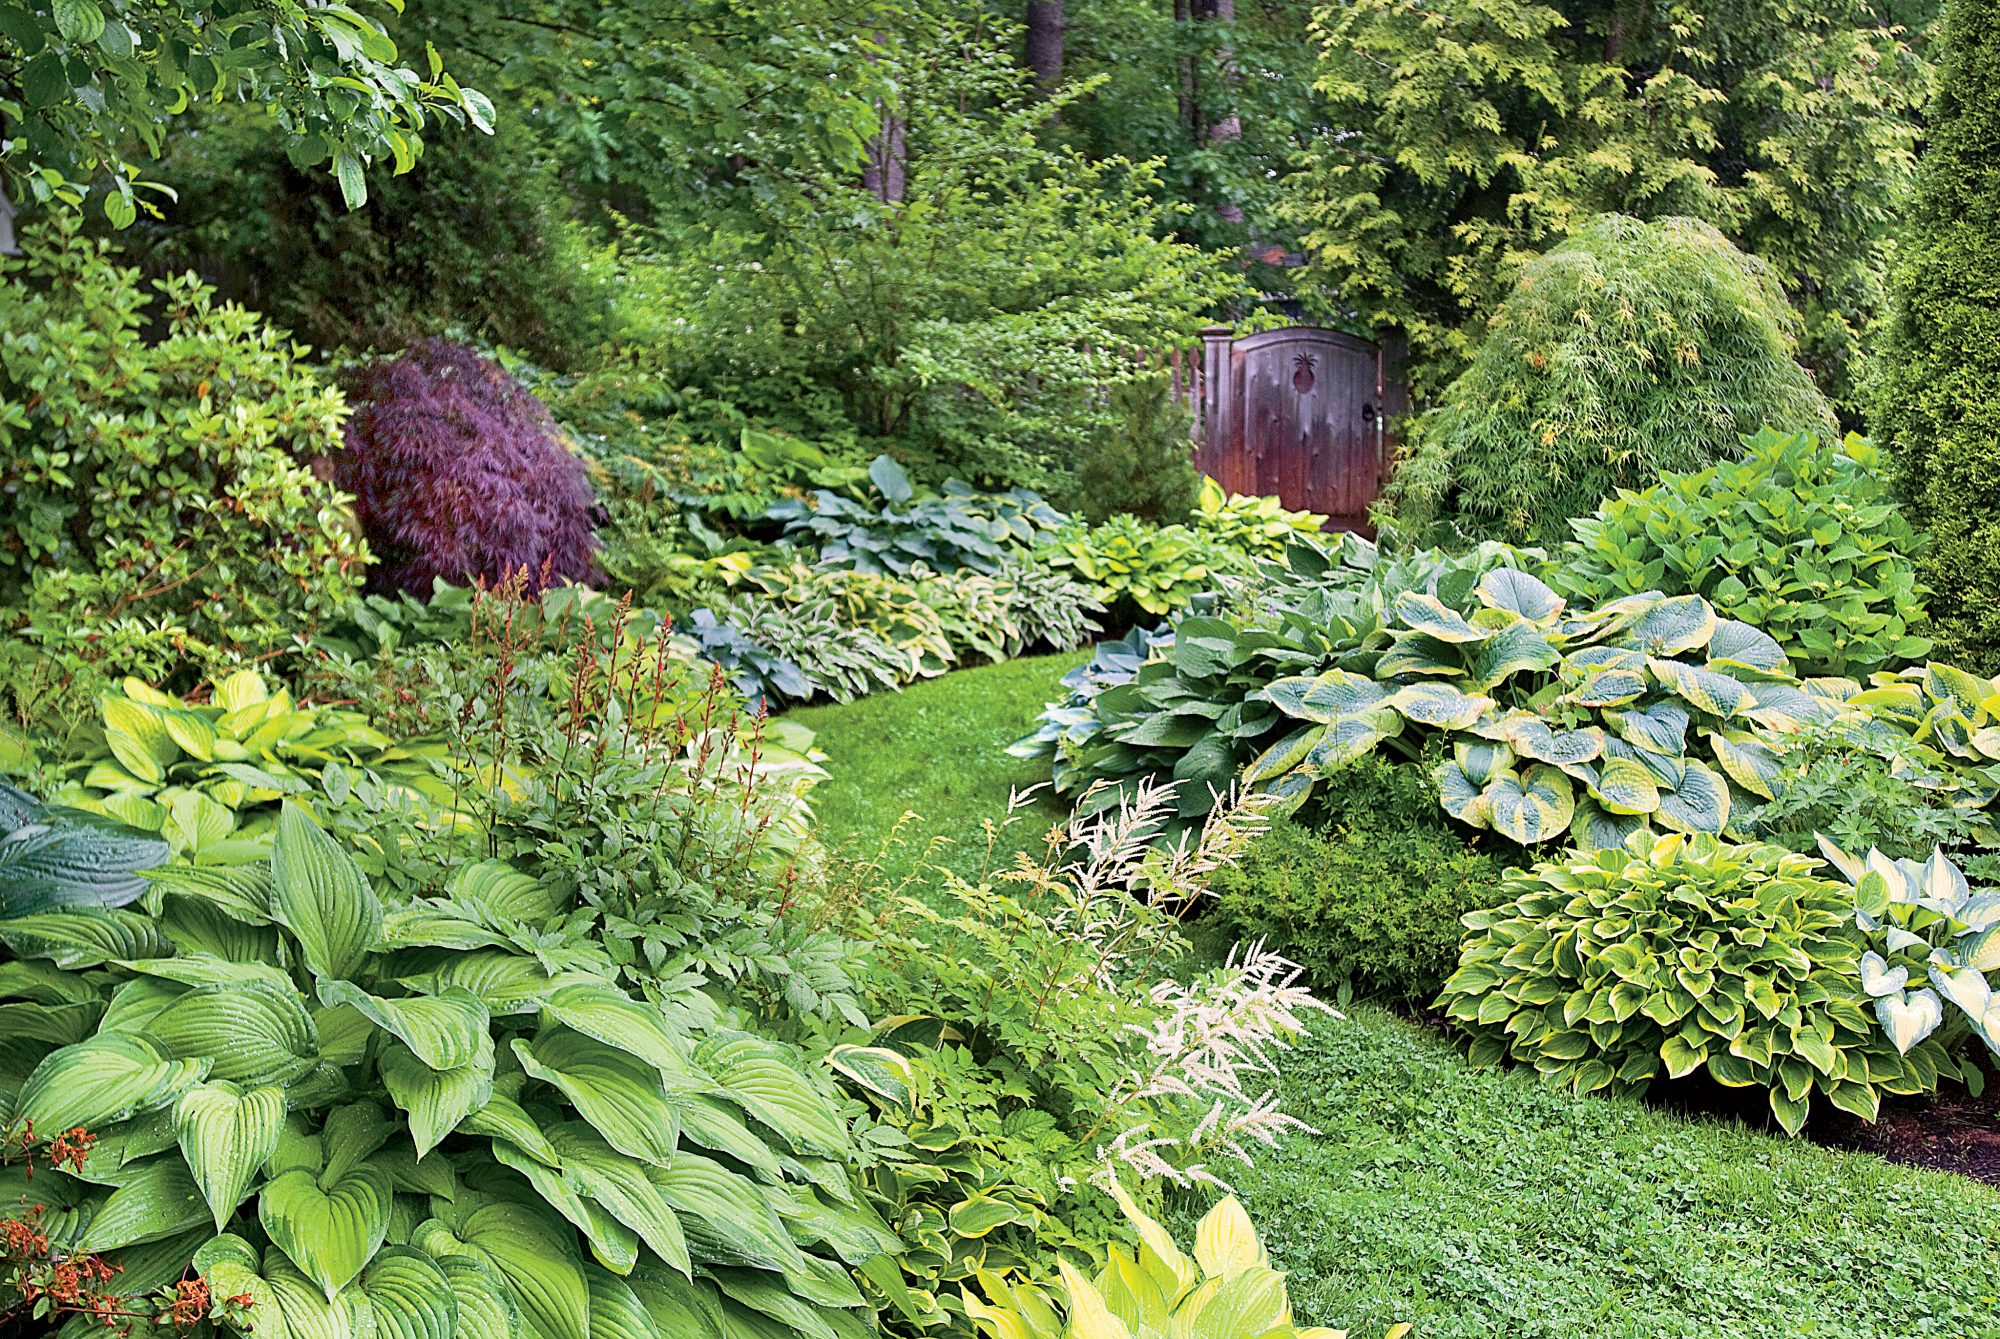 Hostas Plants in Garden